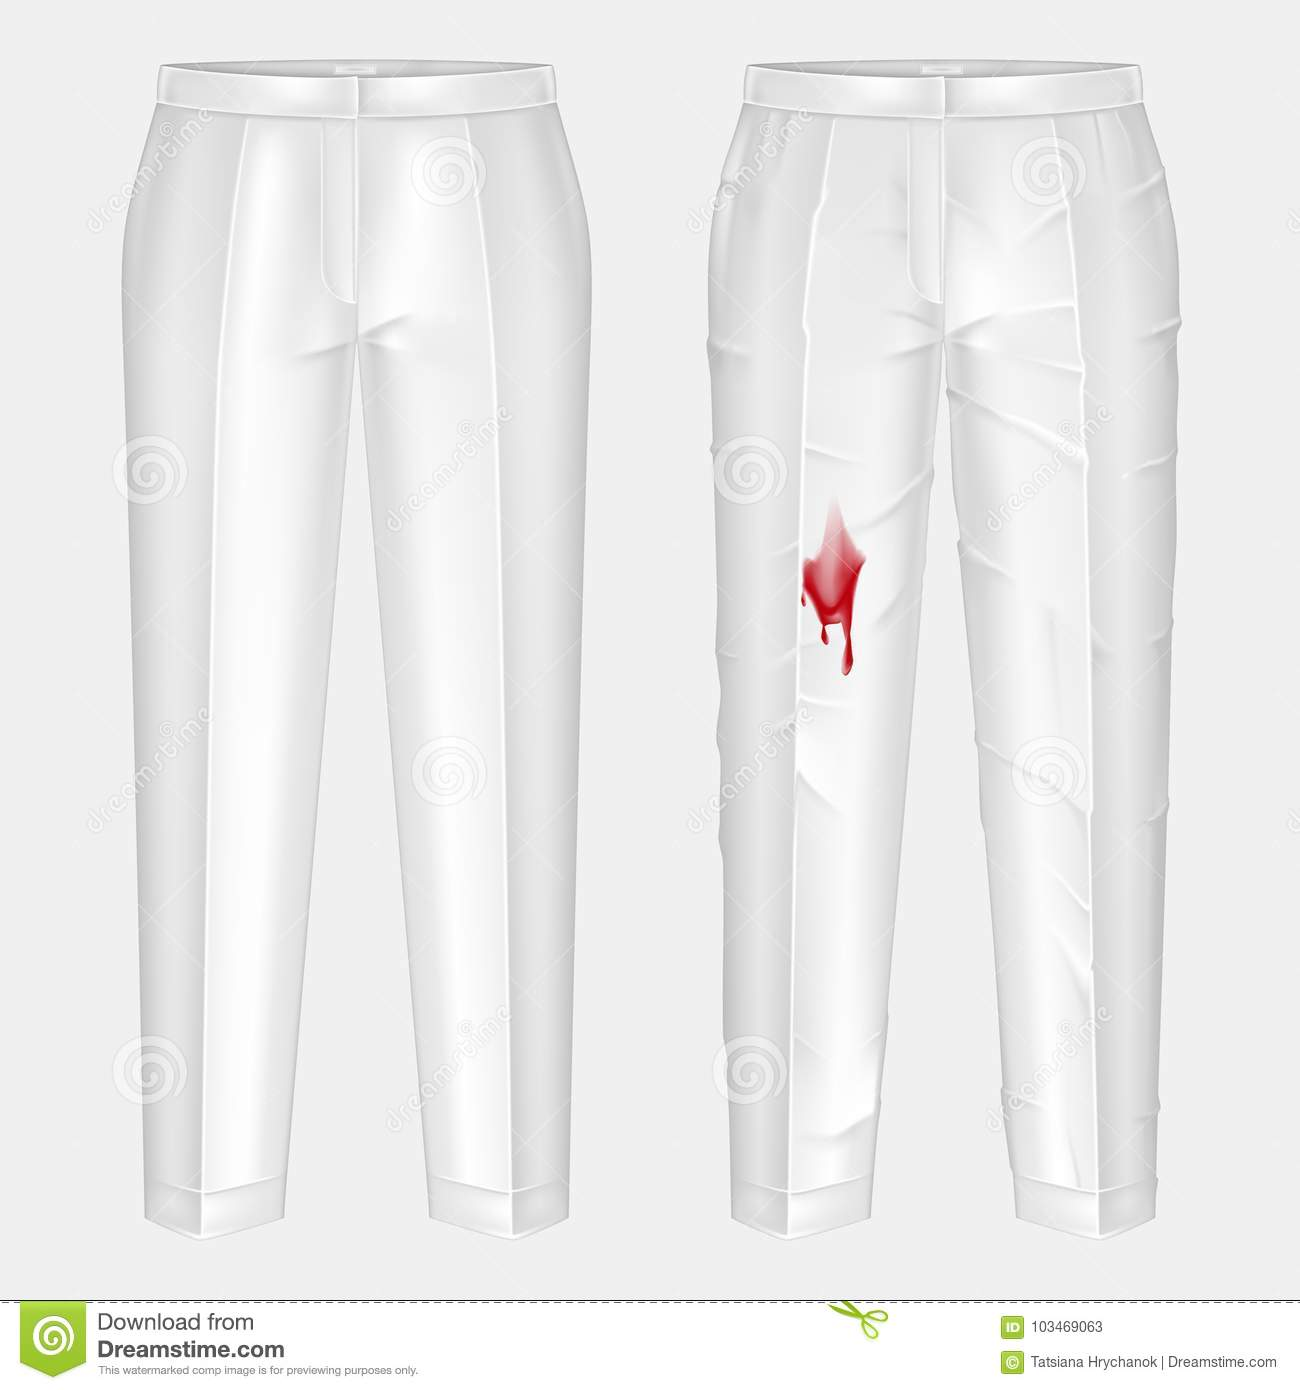 Pare of dirty, rubbed with blood blotch and ironed, shiny clean white  womens pants realistic vector. Clothing before after washing, stain removal  concept ...